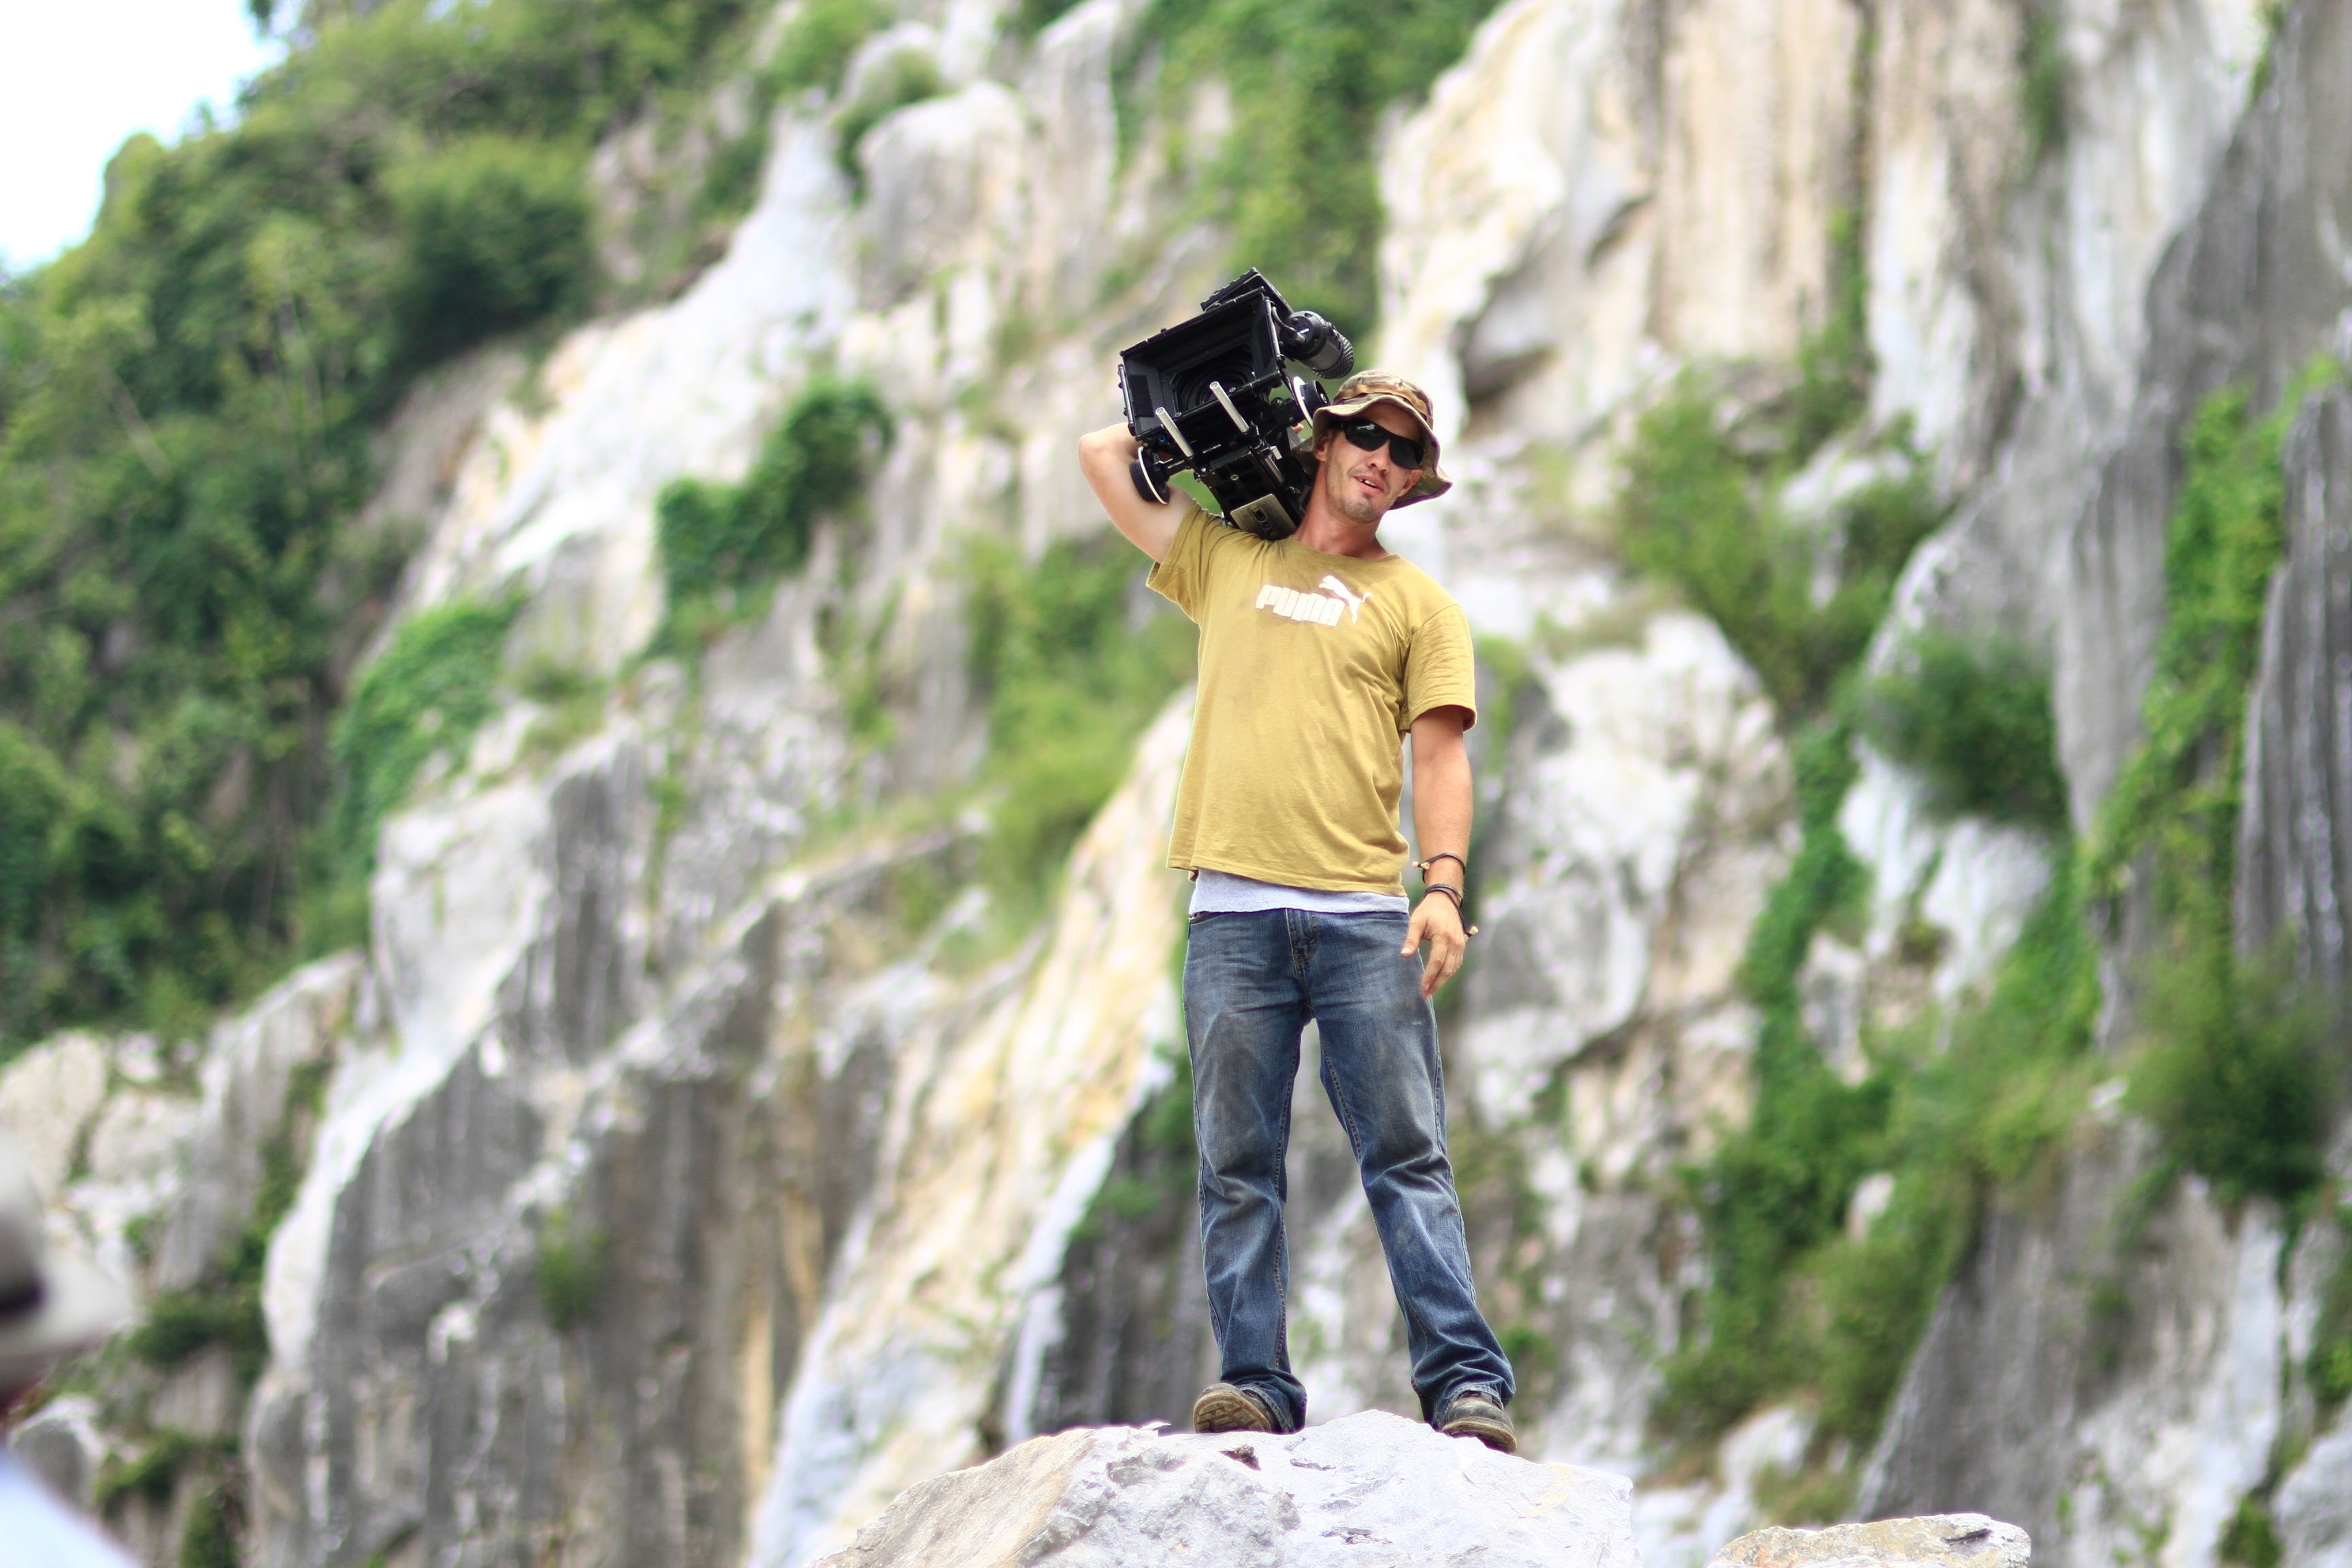 Man Standing on Rock While Holding Black Case